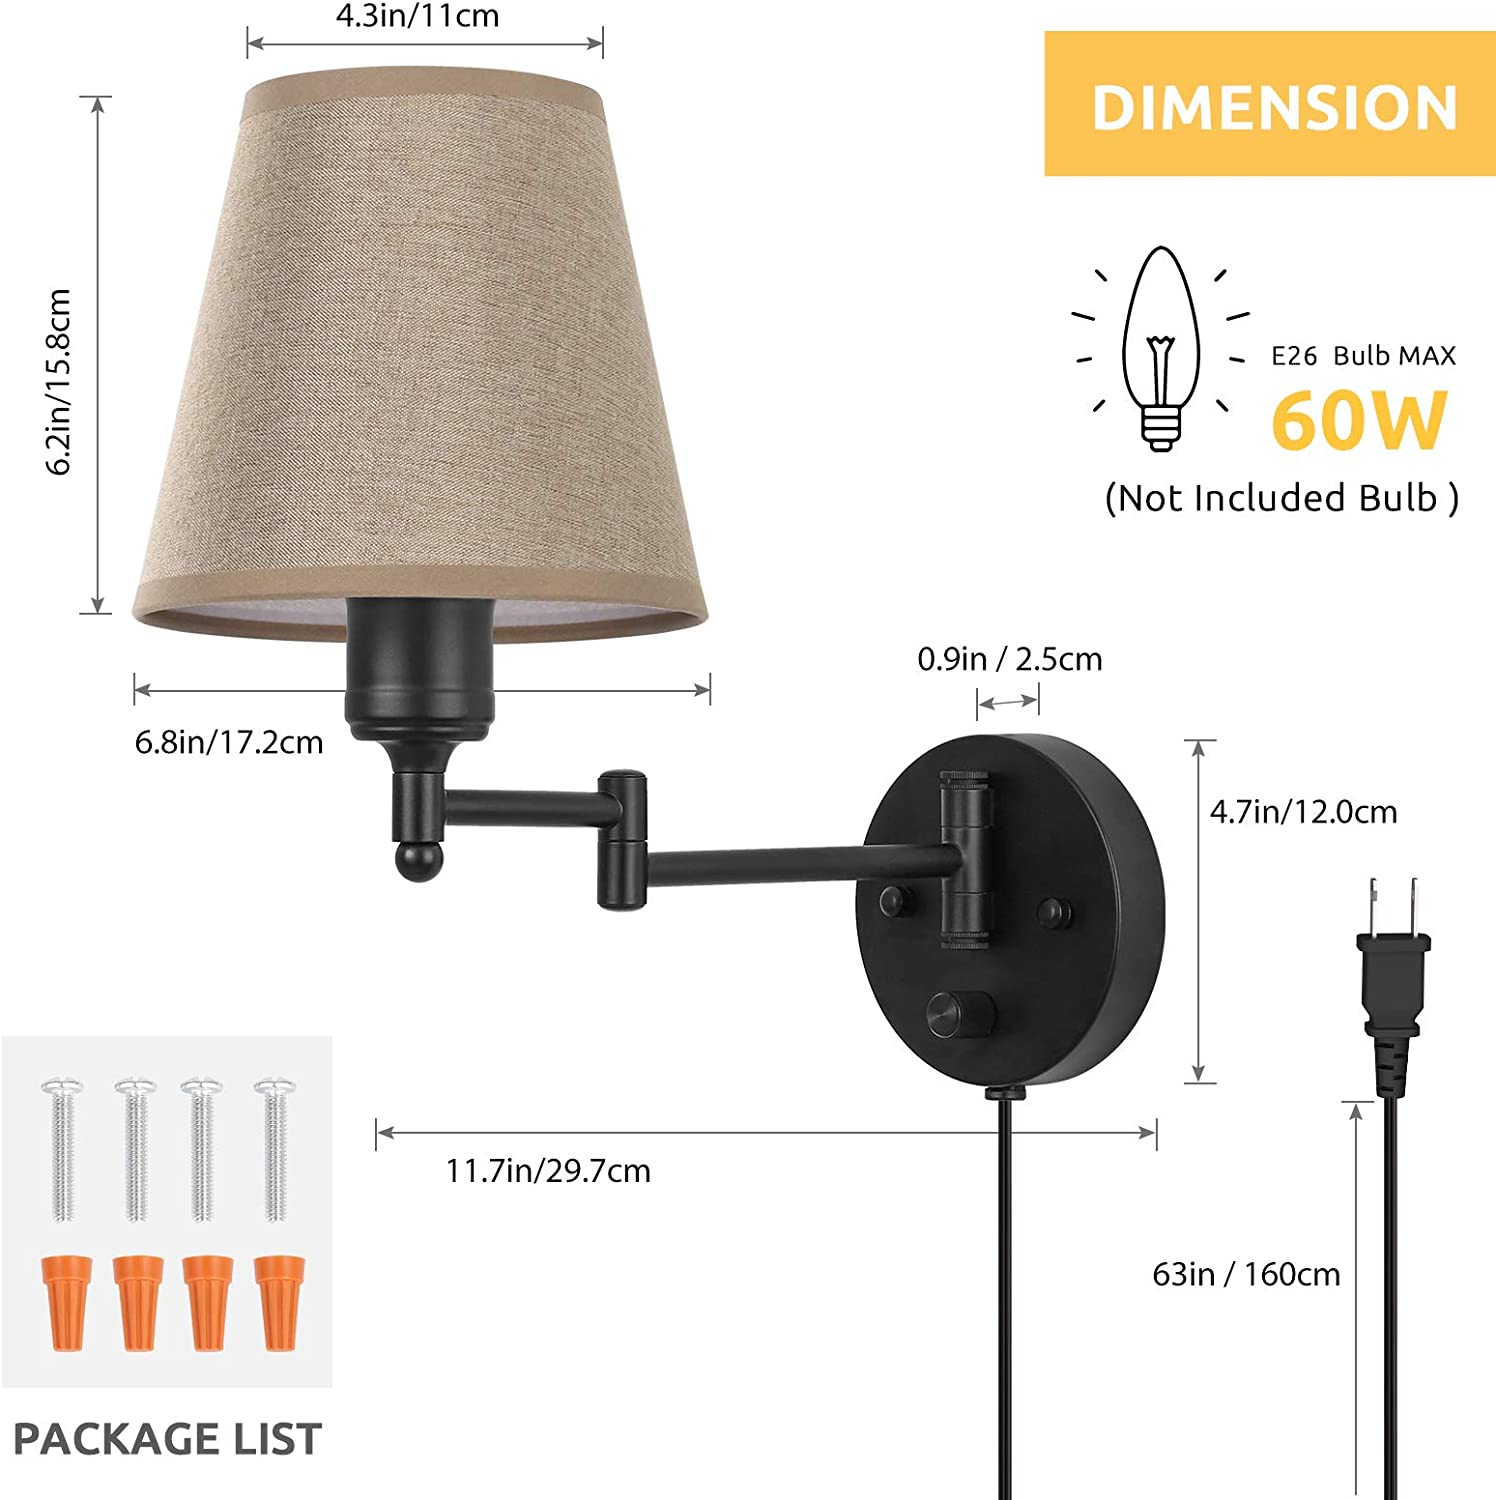 HAITRAL Wall Lamps Set of 2- Brown Wall Mounted Lights with Brown Linen Fabric Shade Wall Sconces Lighting for Bedroom Bedroom Wall Lamps Plug in with Cord or Hardwired Living Room Dorm